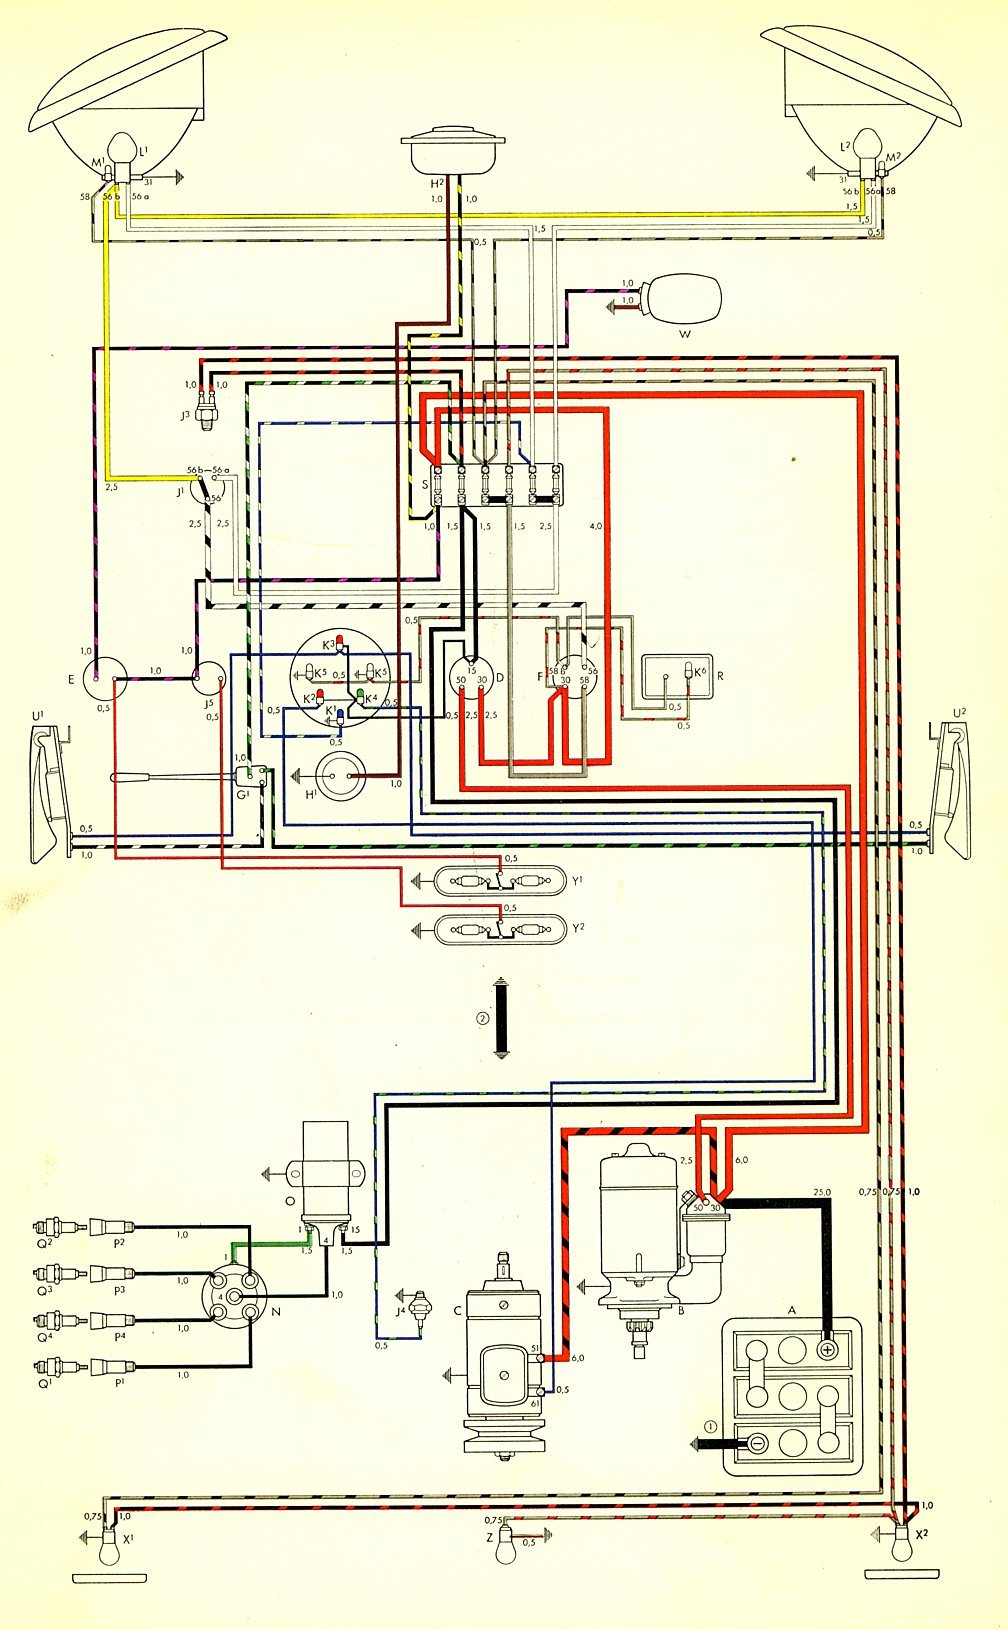 bus_59 bus wiring diagram vw wiring harness diagram \u2022 wiring diagrams j 1965 vw bus wiring harness at alyssarenee.co